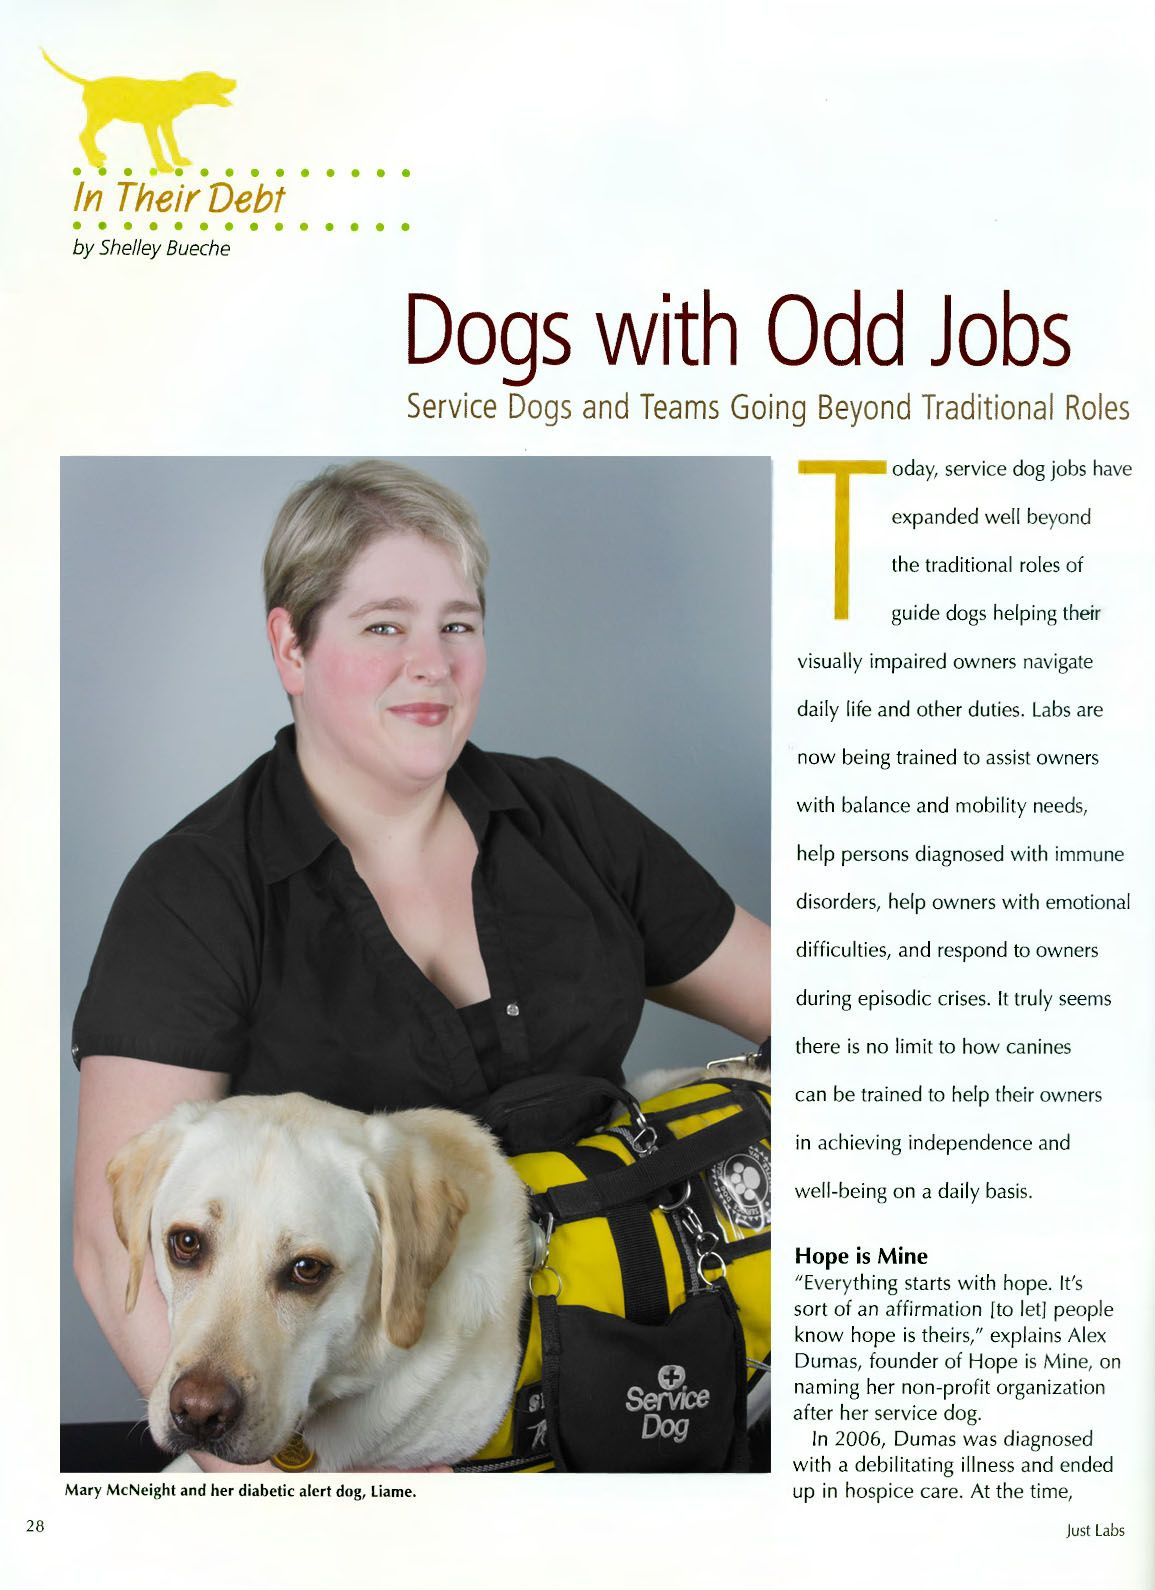 In The Media Diabetic Alert Dog University Videos About